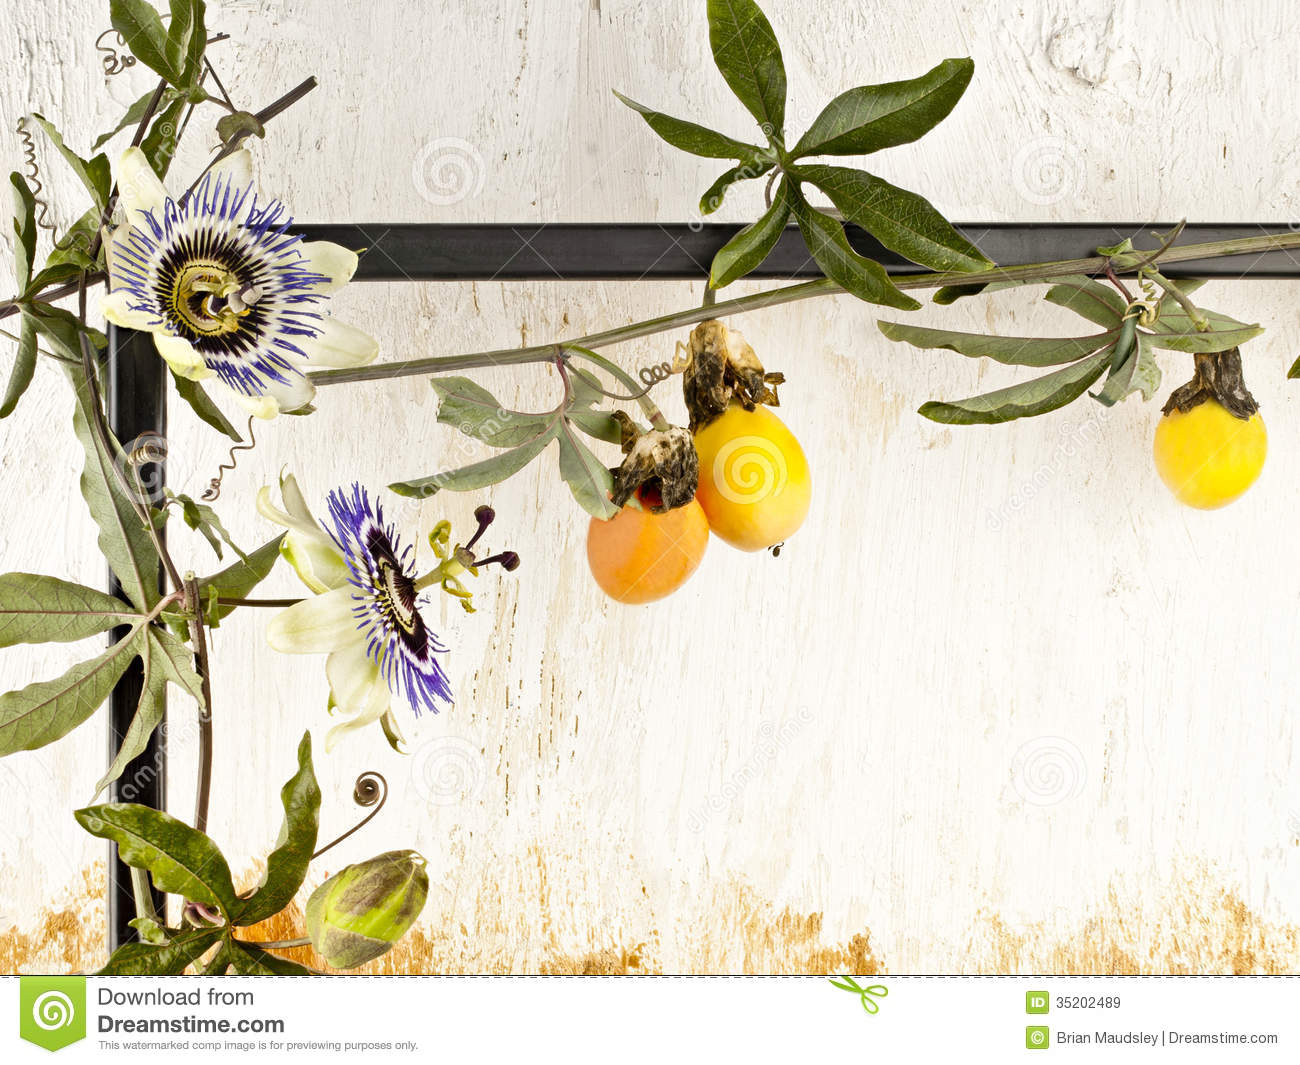 Passion Fruit Vine Stock Photos, Images, & Pictures.